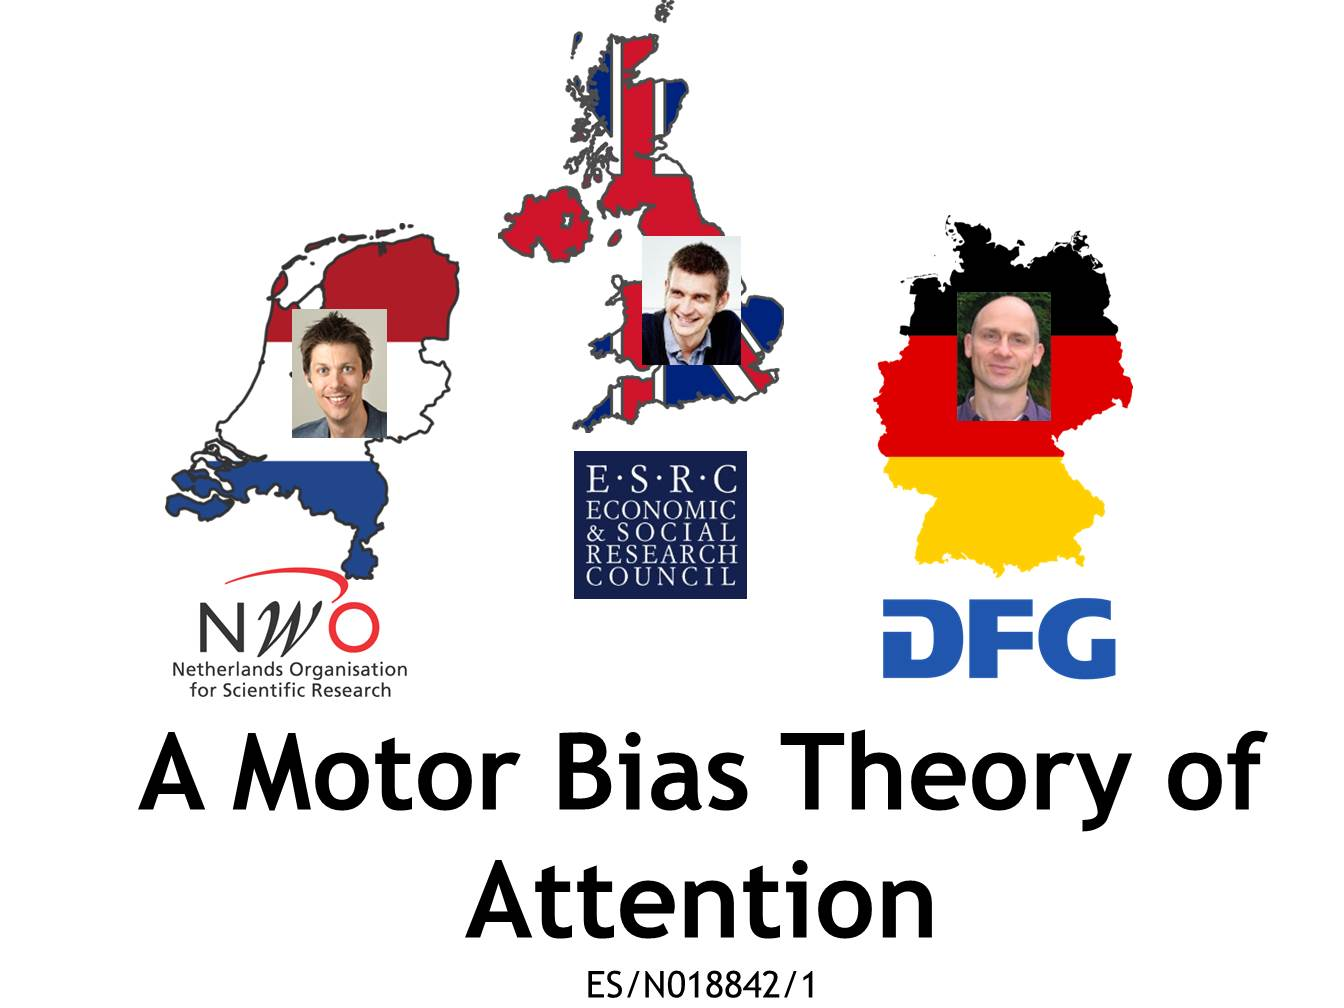 A Motor Bias Theory of Attention